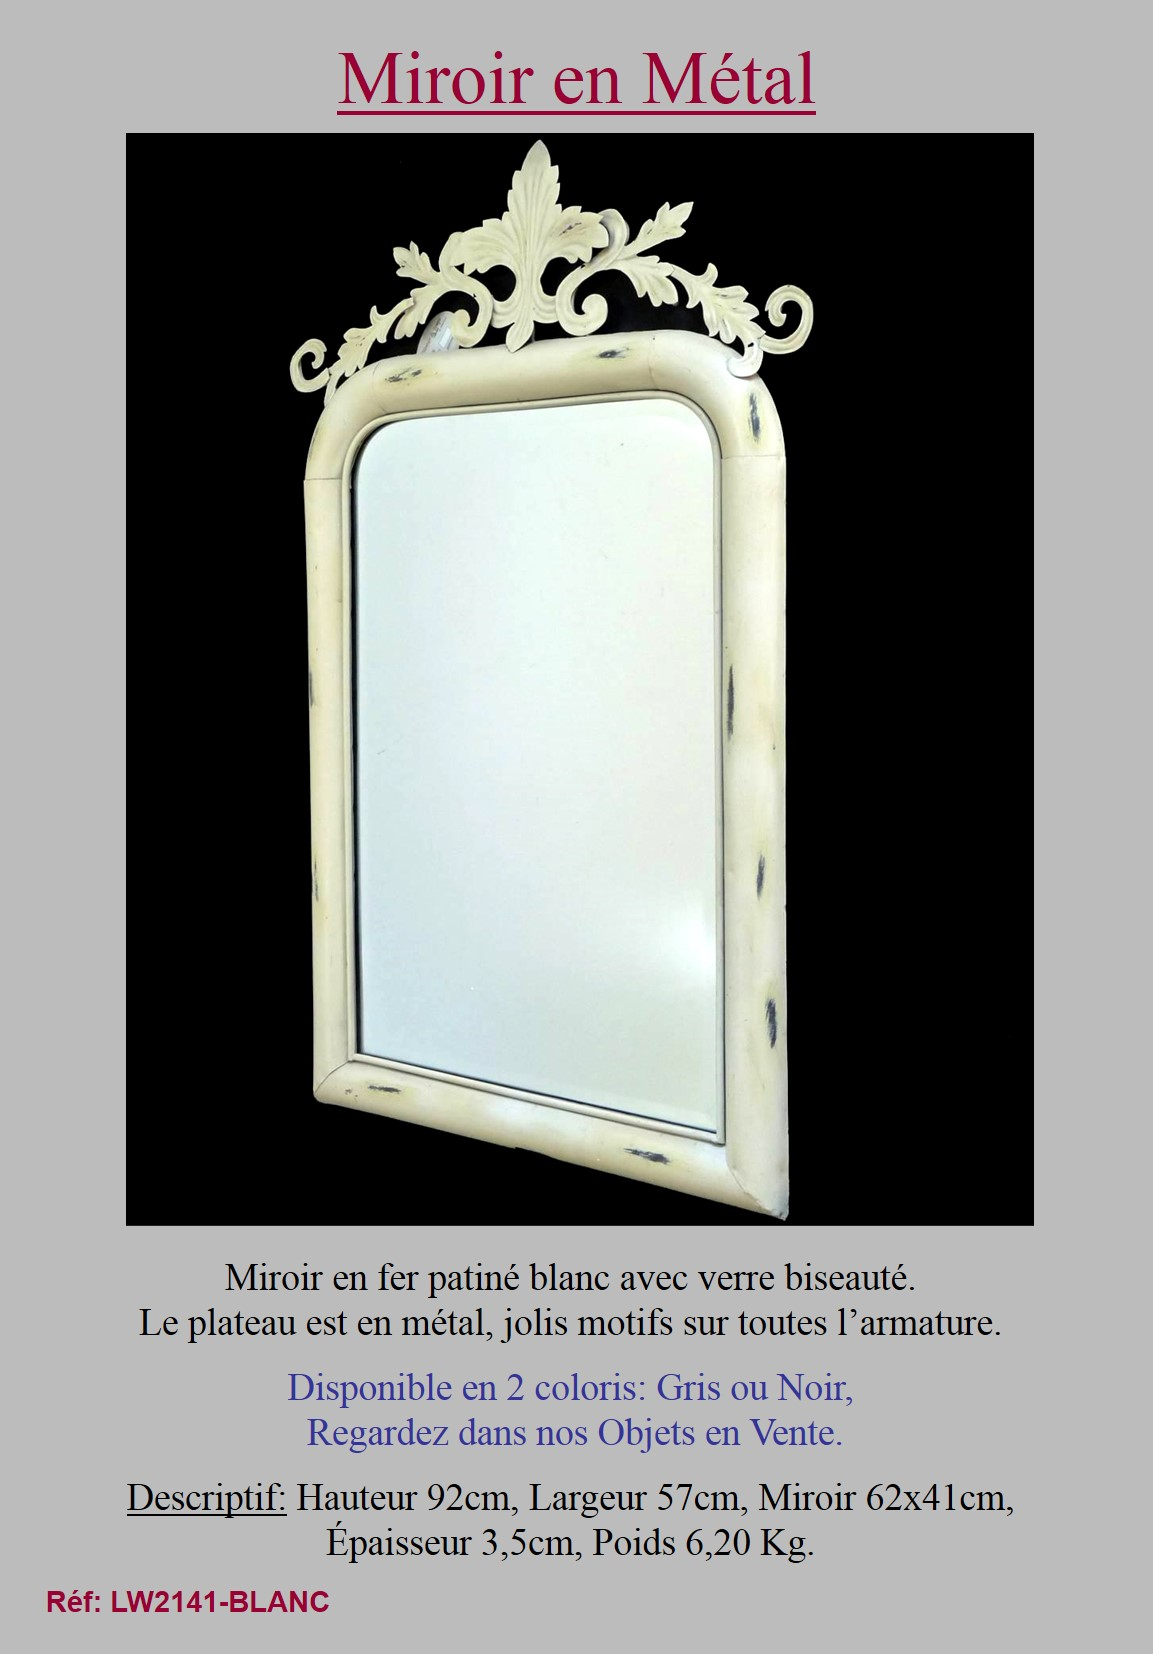 style ancien miroir antique trumeau blanc en fer de salon cuisine salle de bain. Black Bedroom Furniture Sets. Home Design Ideas